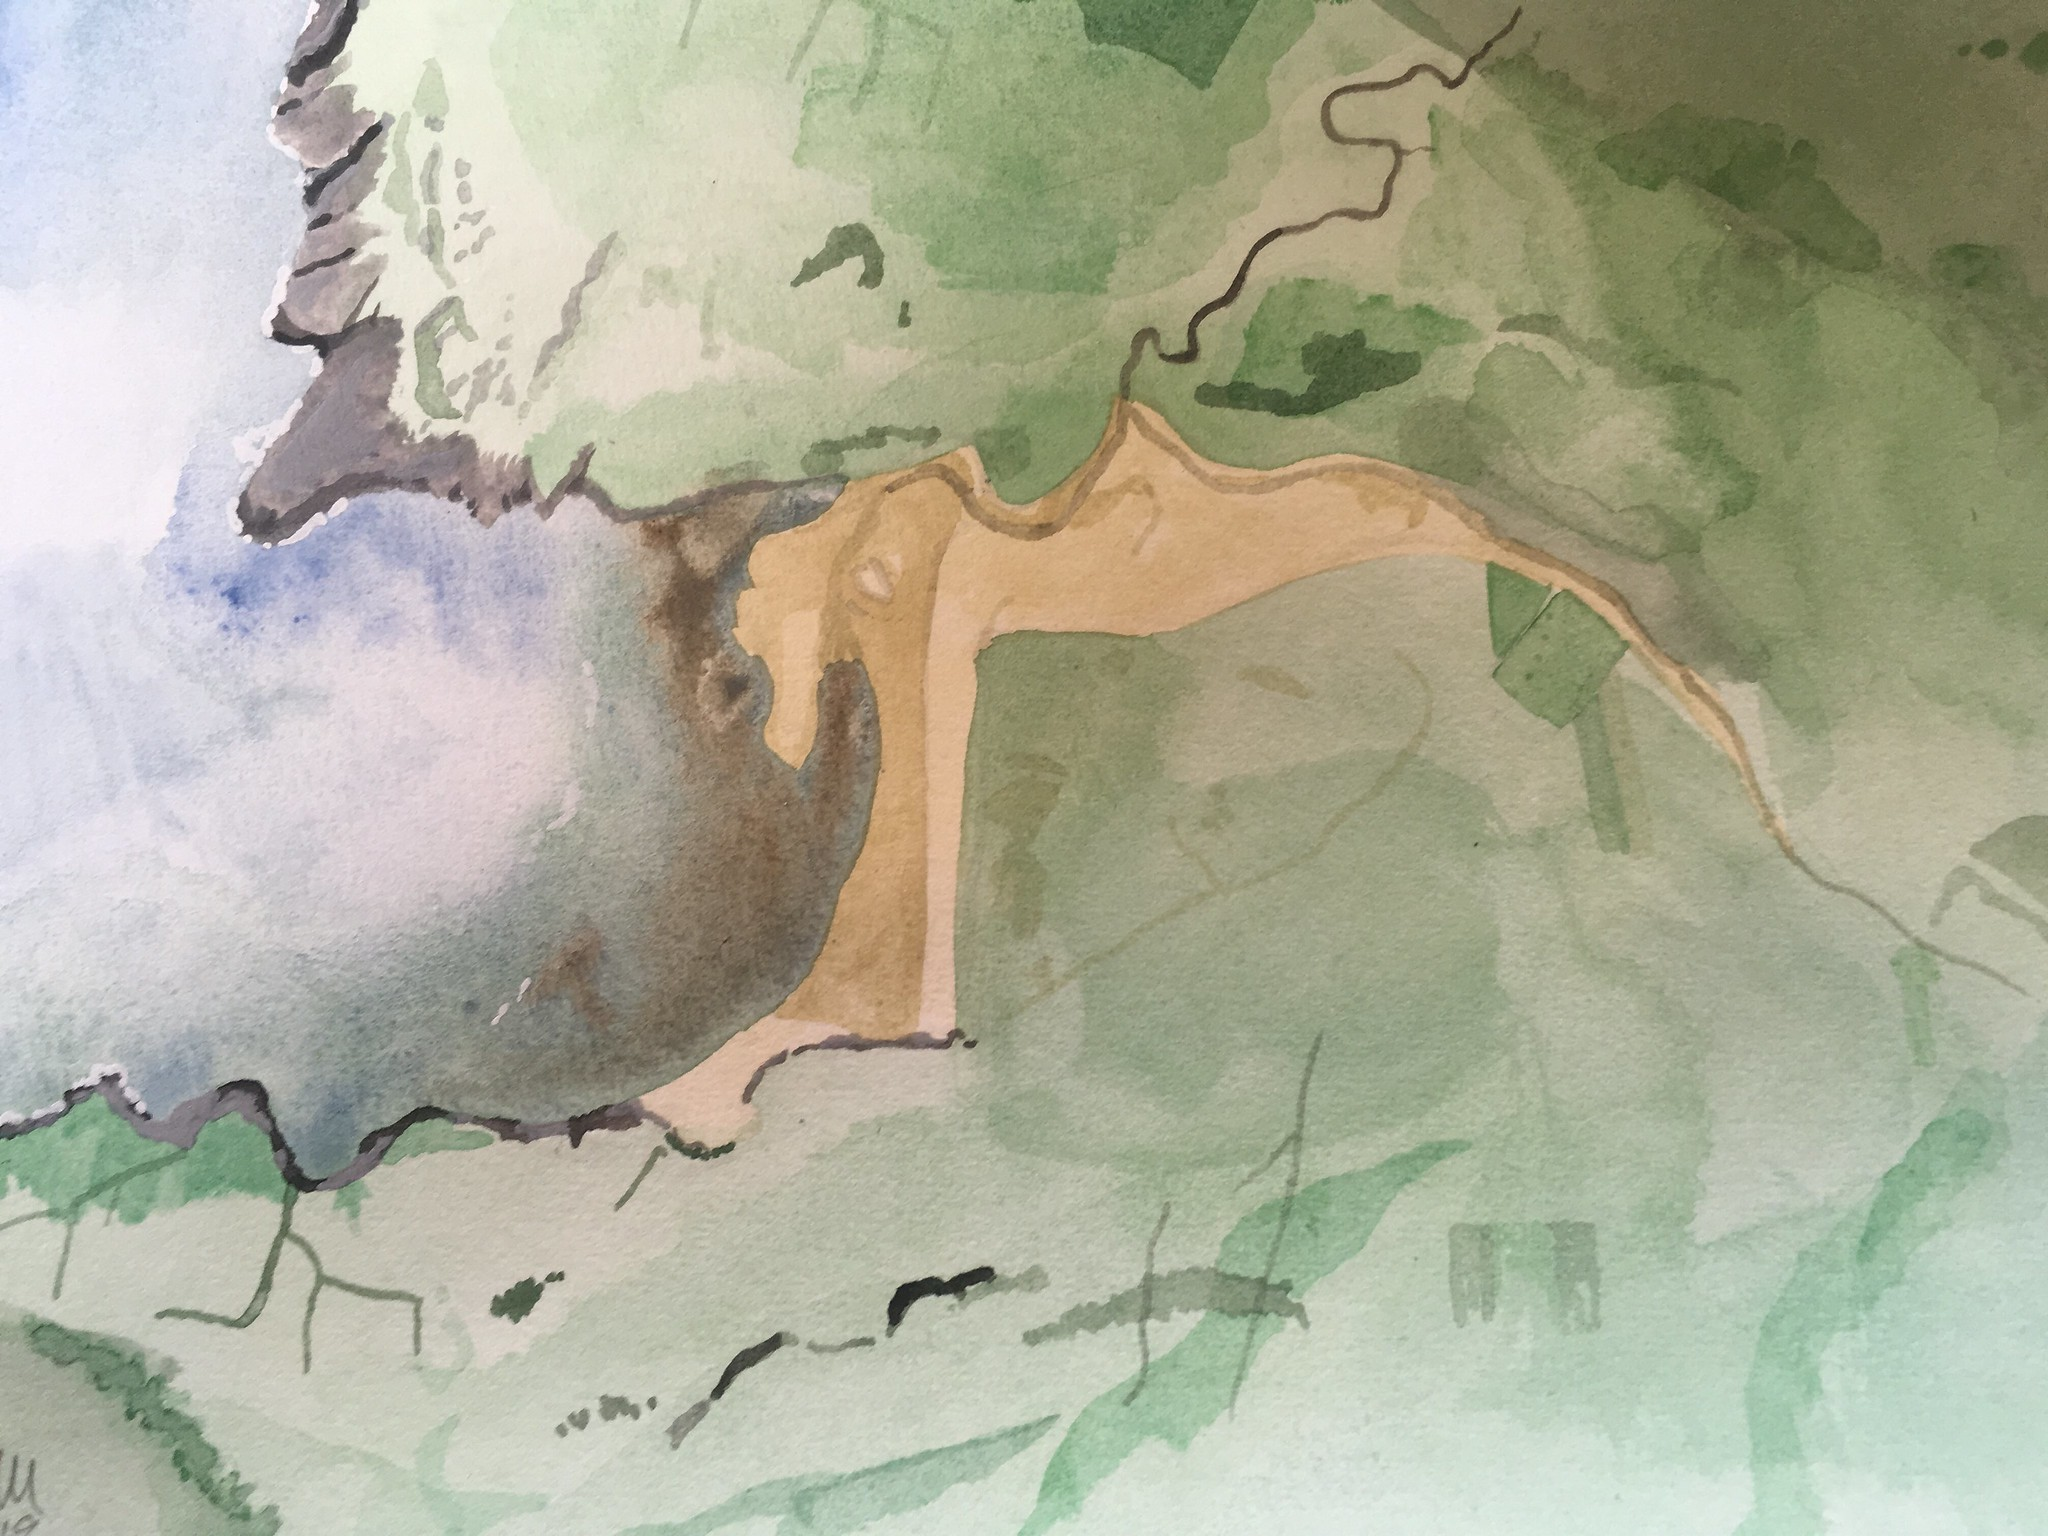 watercolour painting of glencolmcille by adam gee